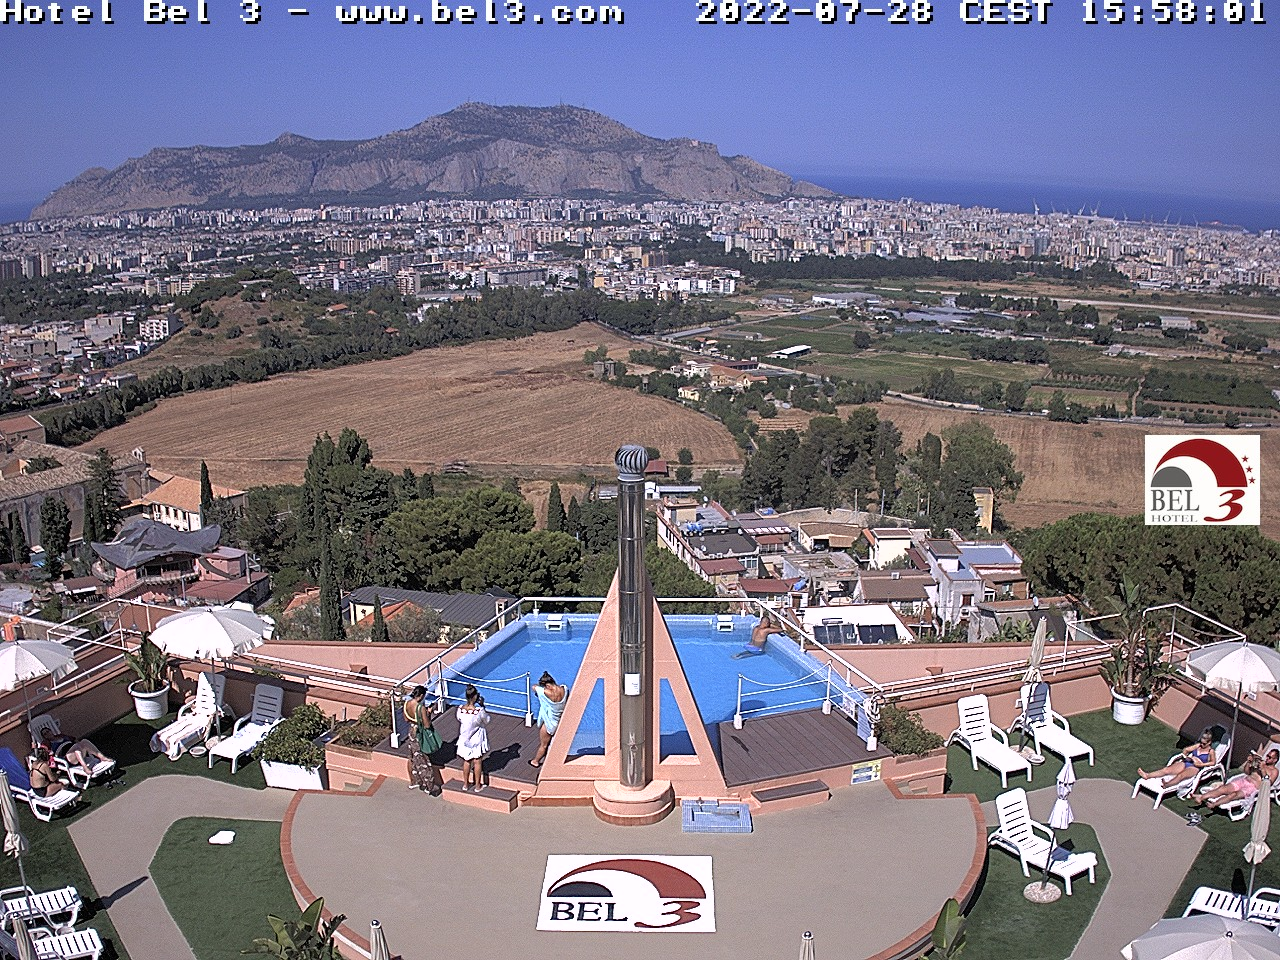 Webcam Palermo - Hotel Bel 3